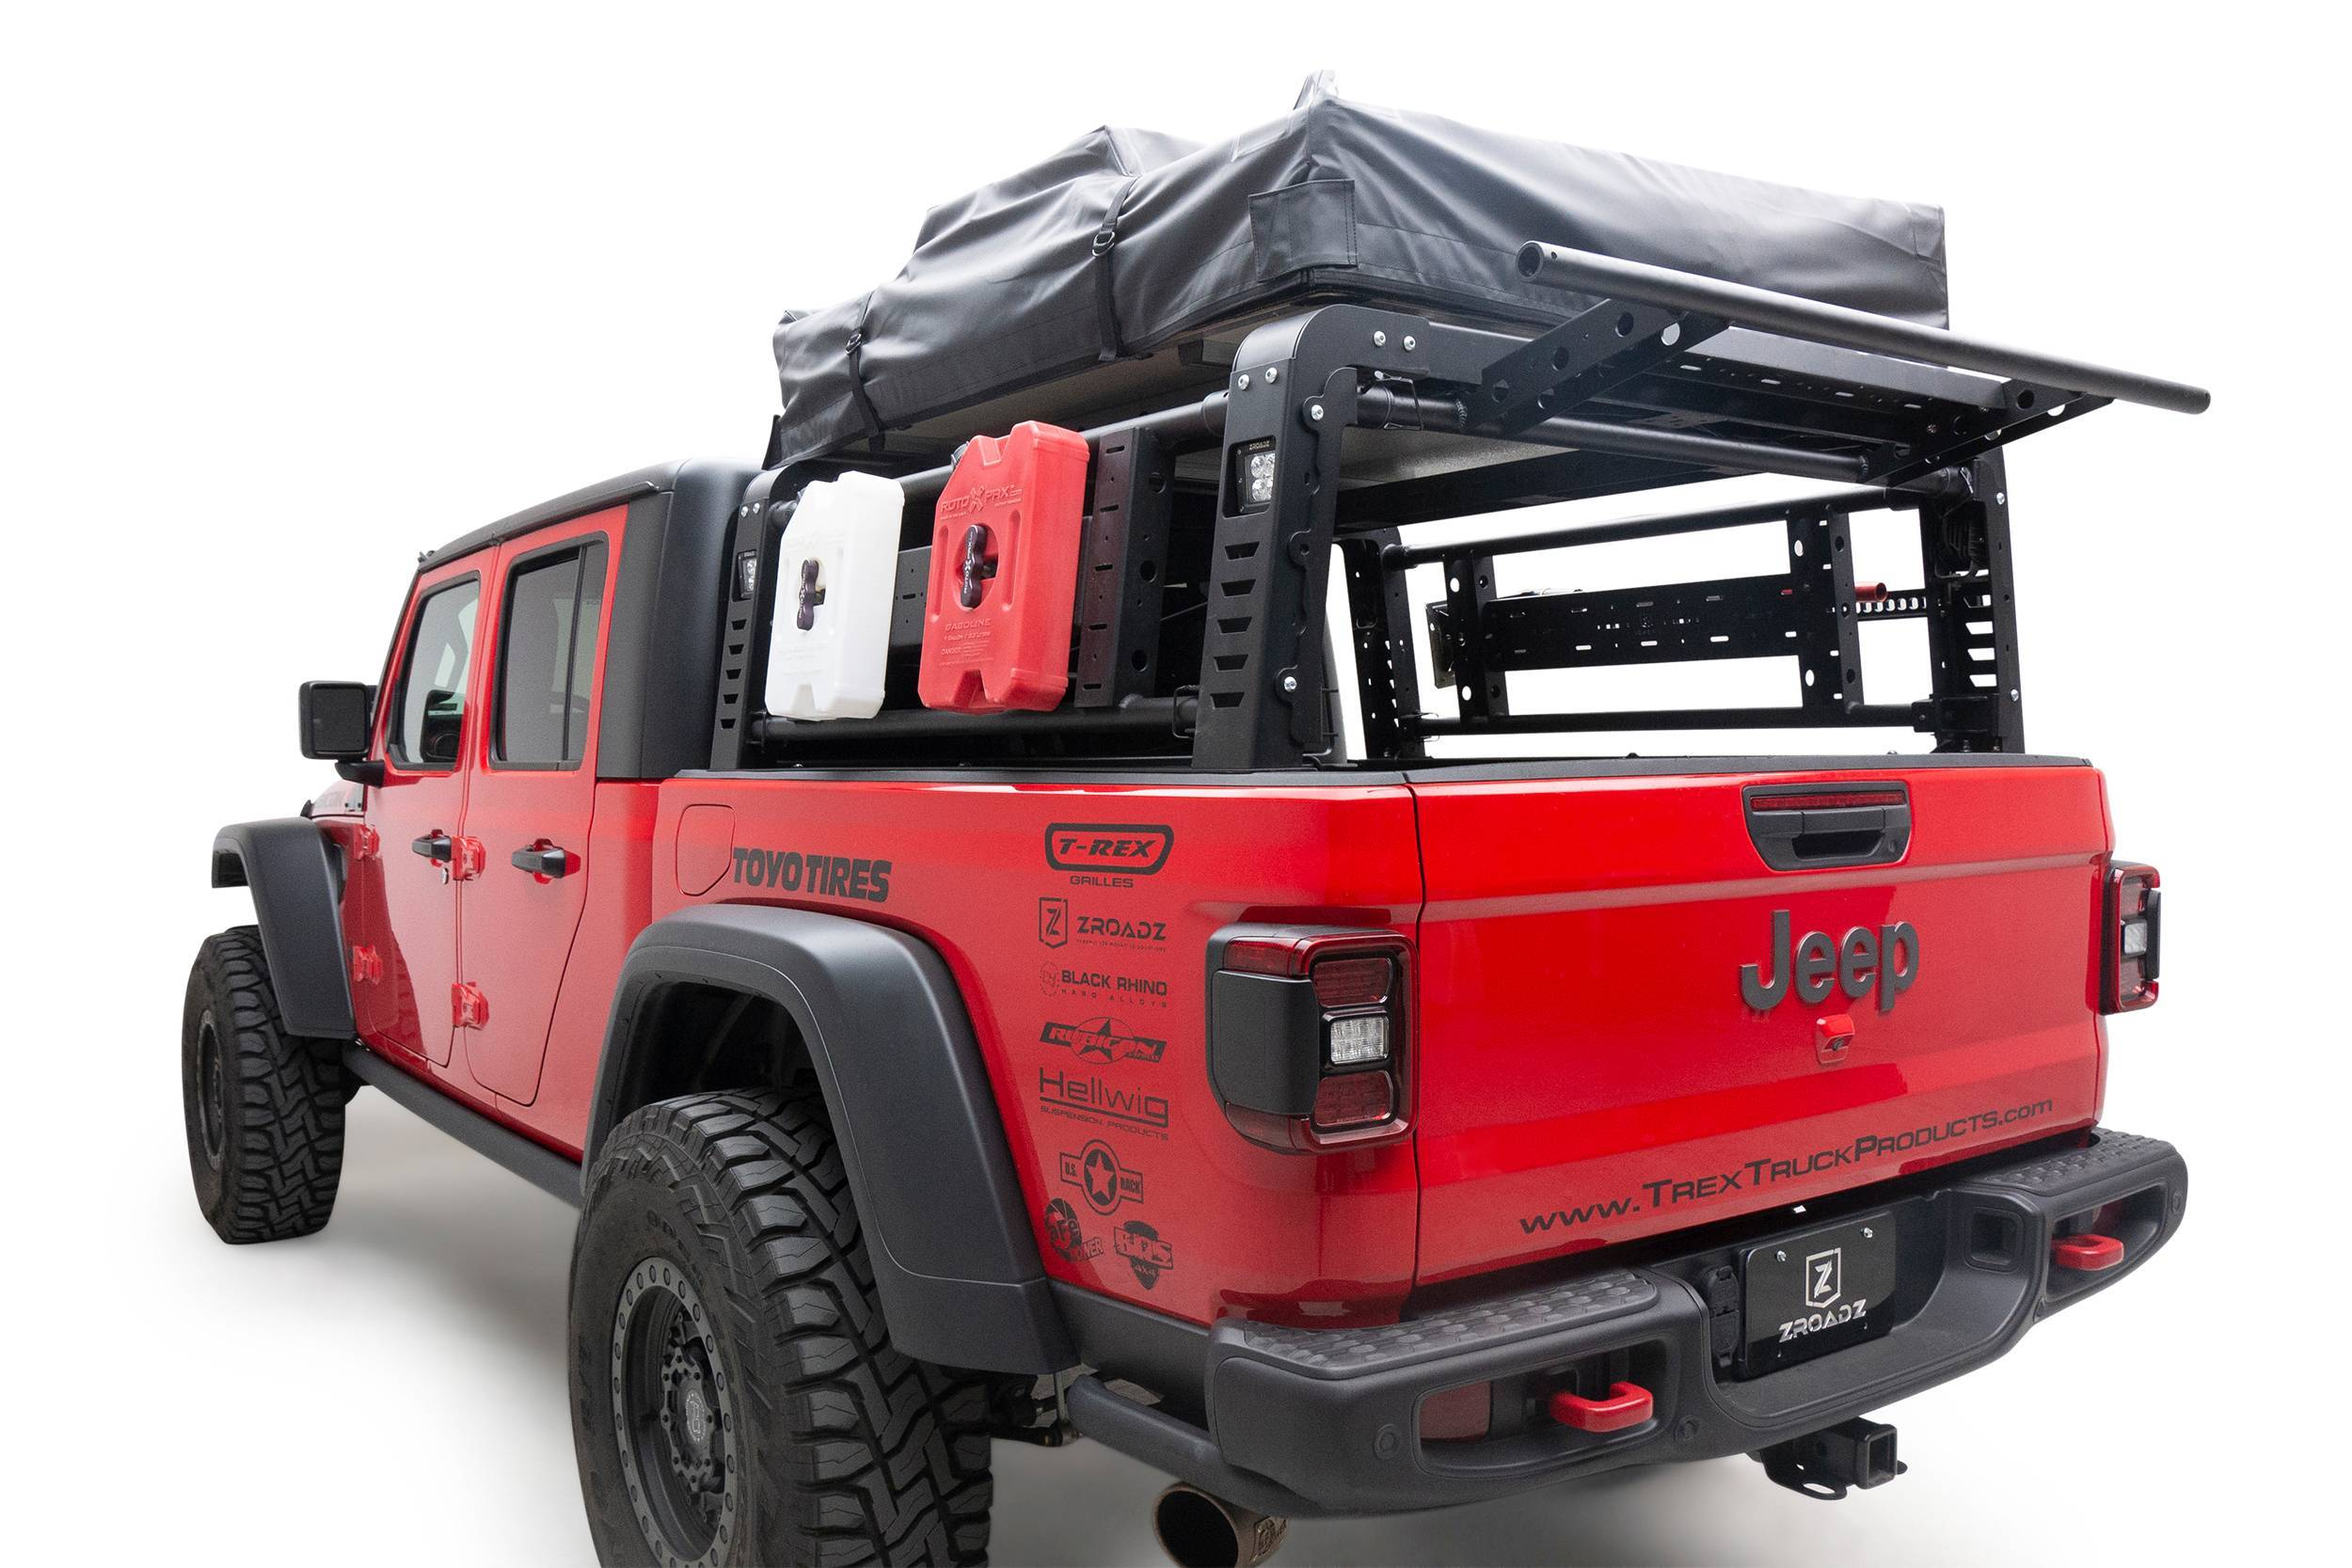 2019 2021 Jeep Gladiator Access Overland Rack With Three Lifting Side Gates For Use On Factory Trail Rail Cargo Systems Pn Z834211